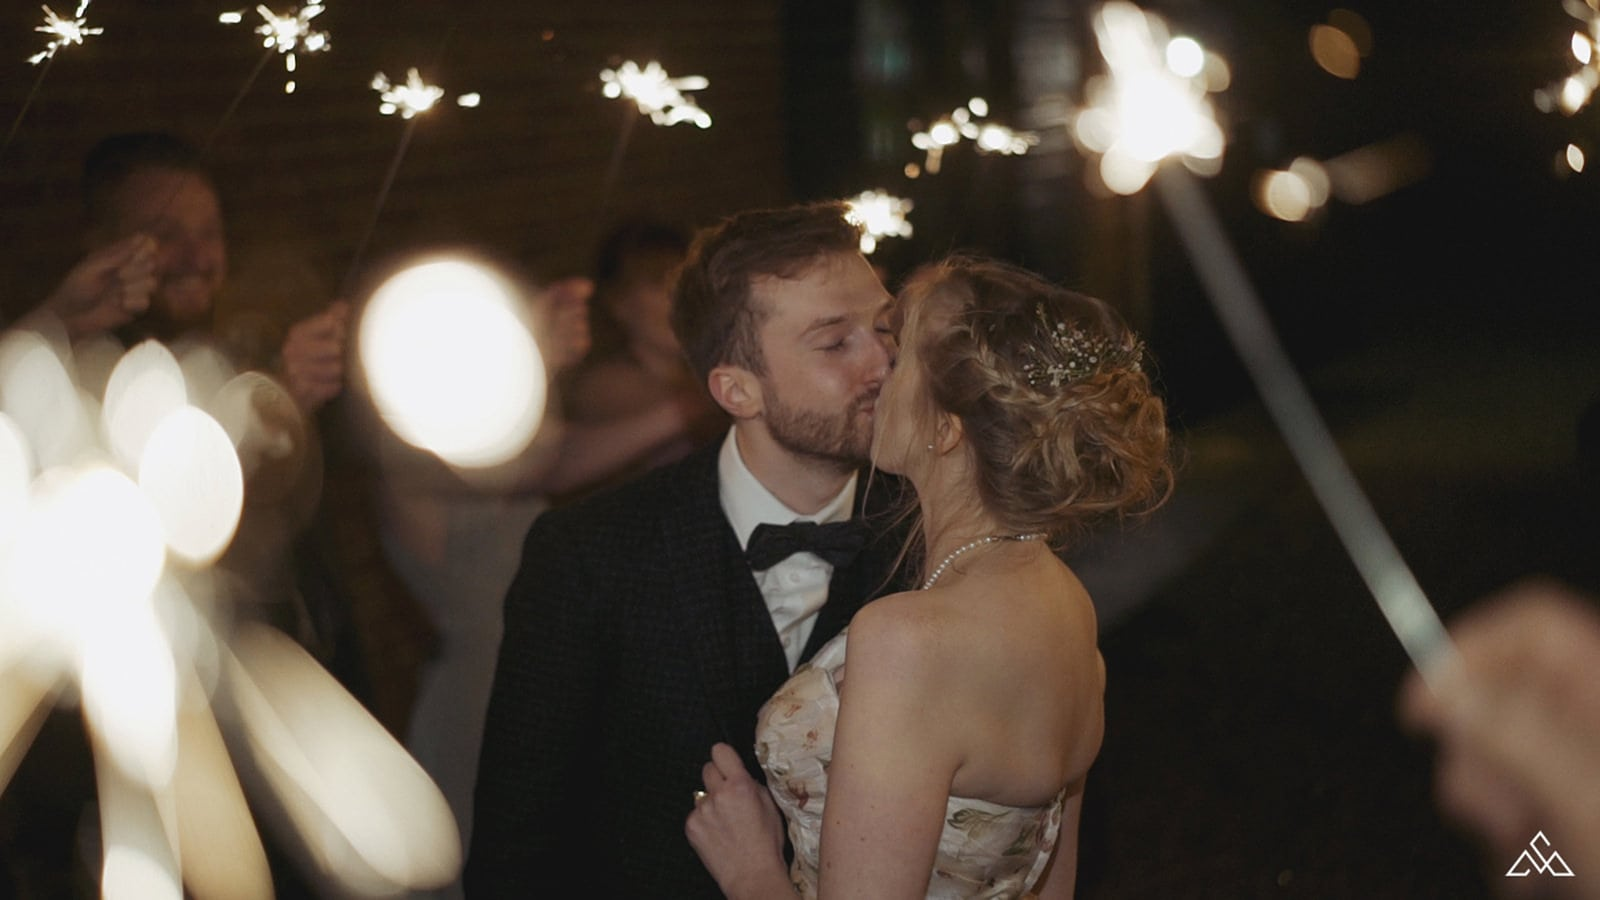 How to use Wedding Sparklers